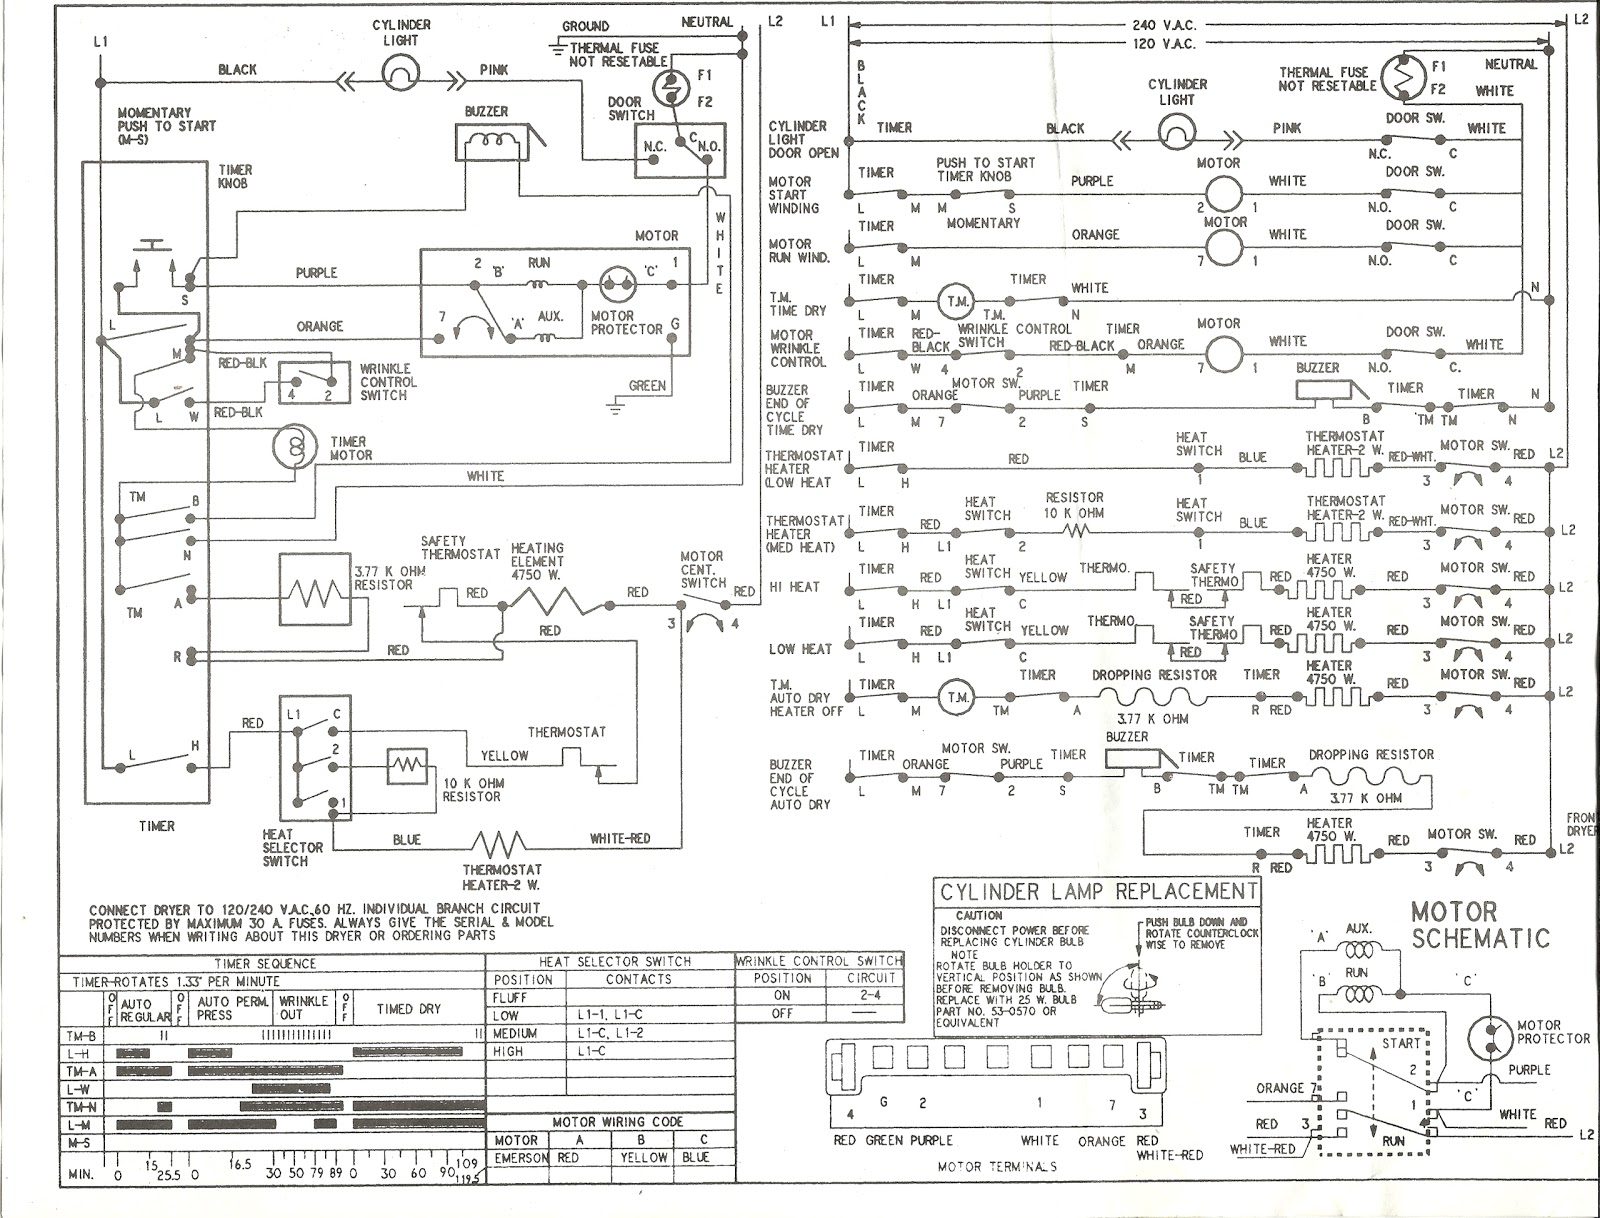 kenmore dryer wiring schematic diagrams kenmore dryer wiring schematic appliance talk: kenmore series electric dryer wiring ...